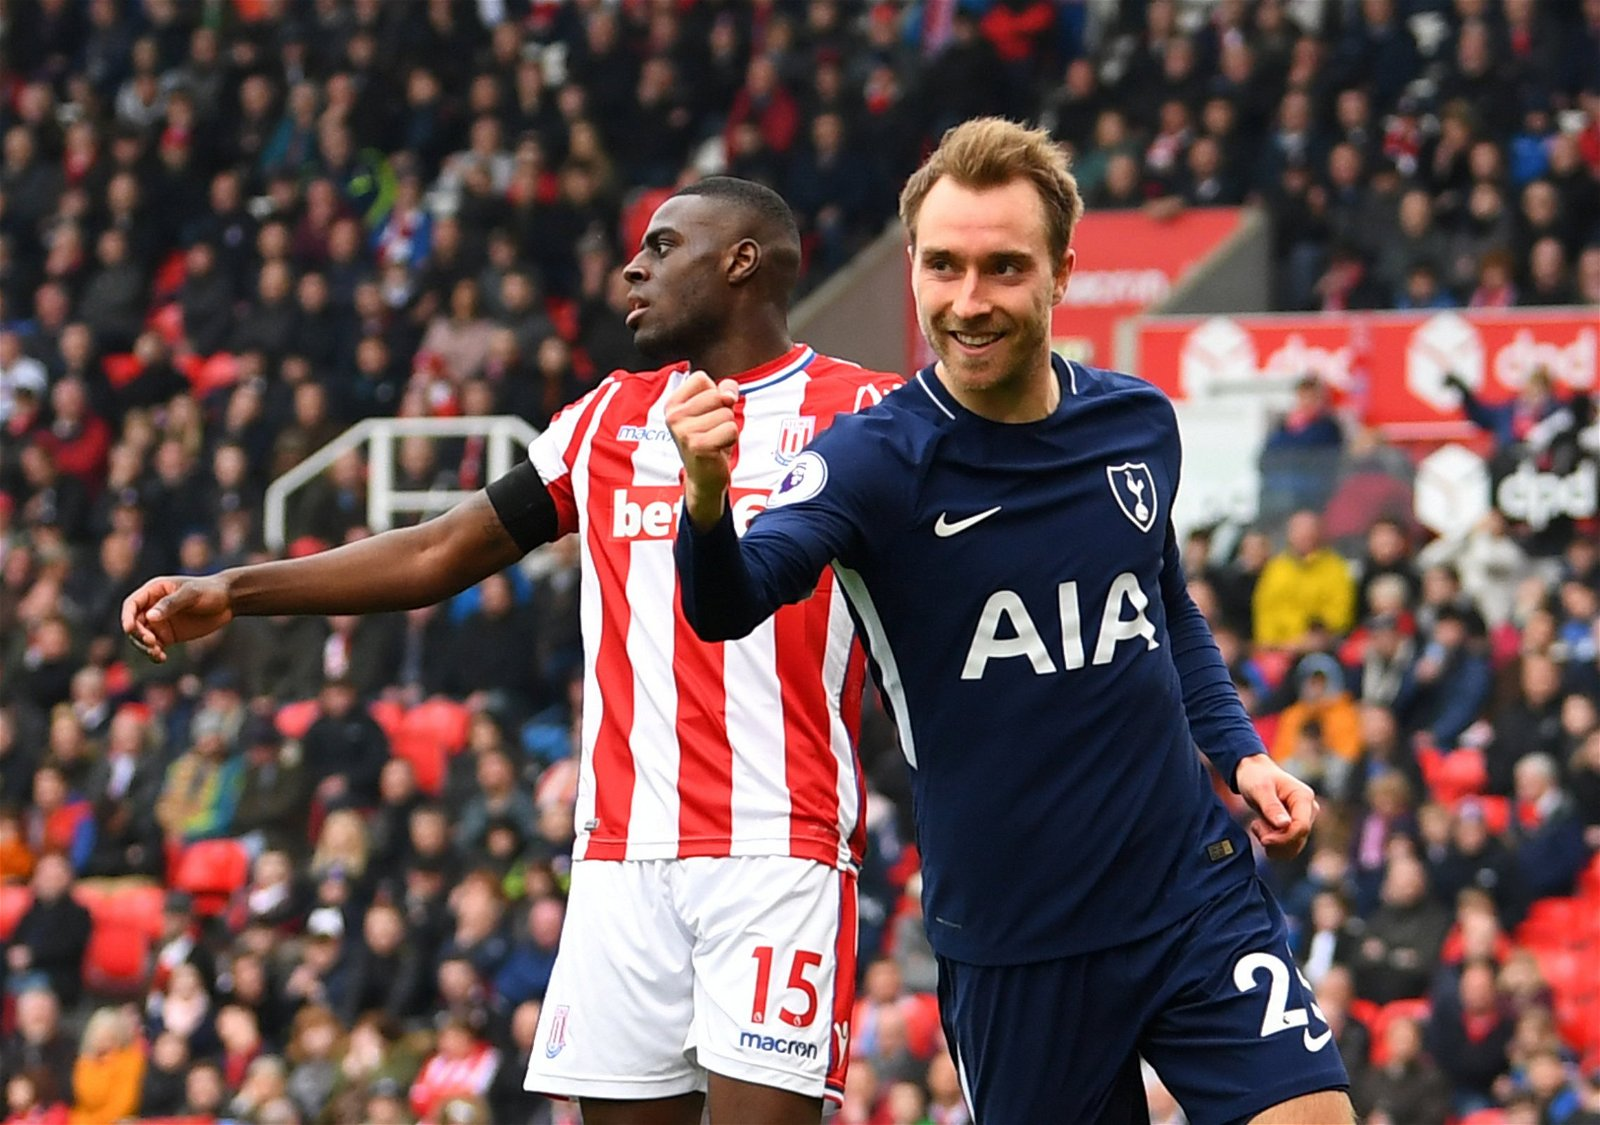 Christian Eriksen celebrates scoring against Stoke City